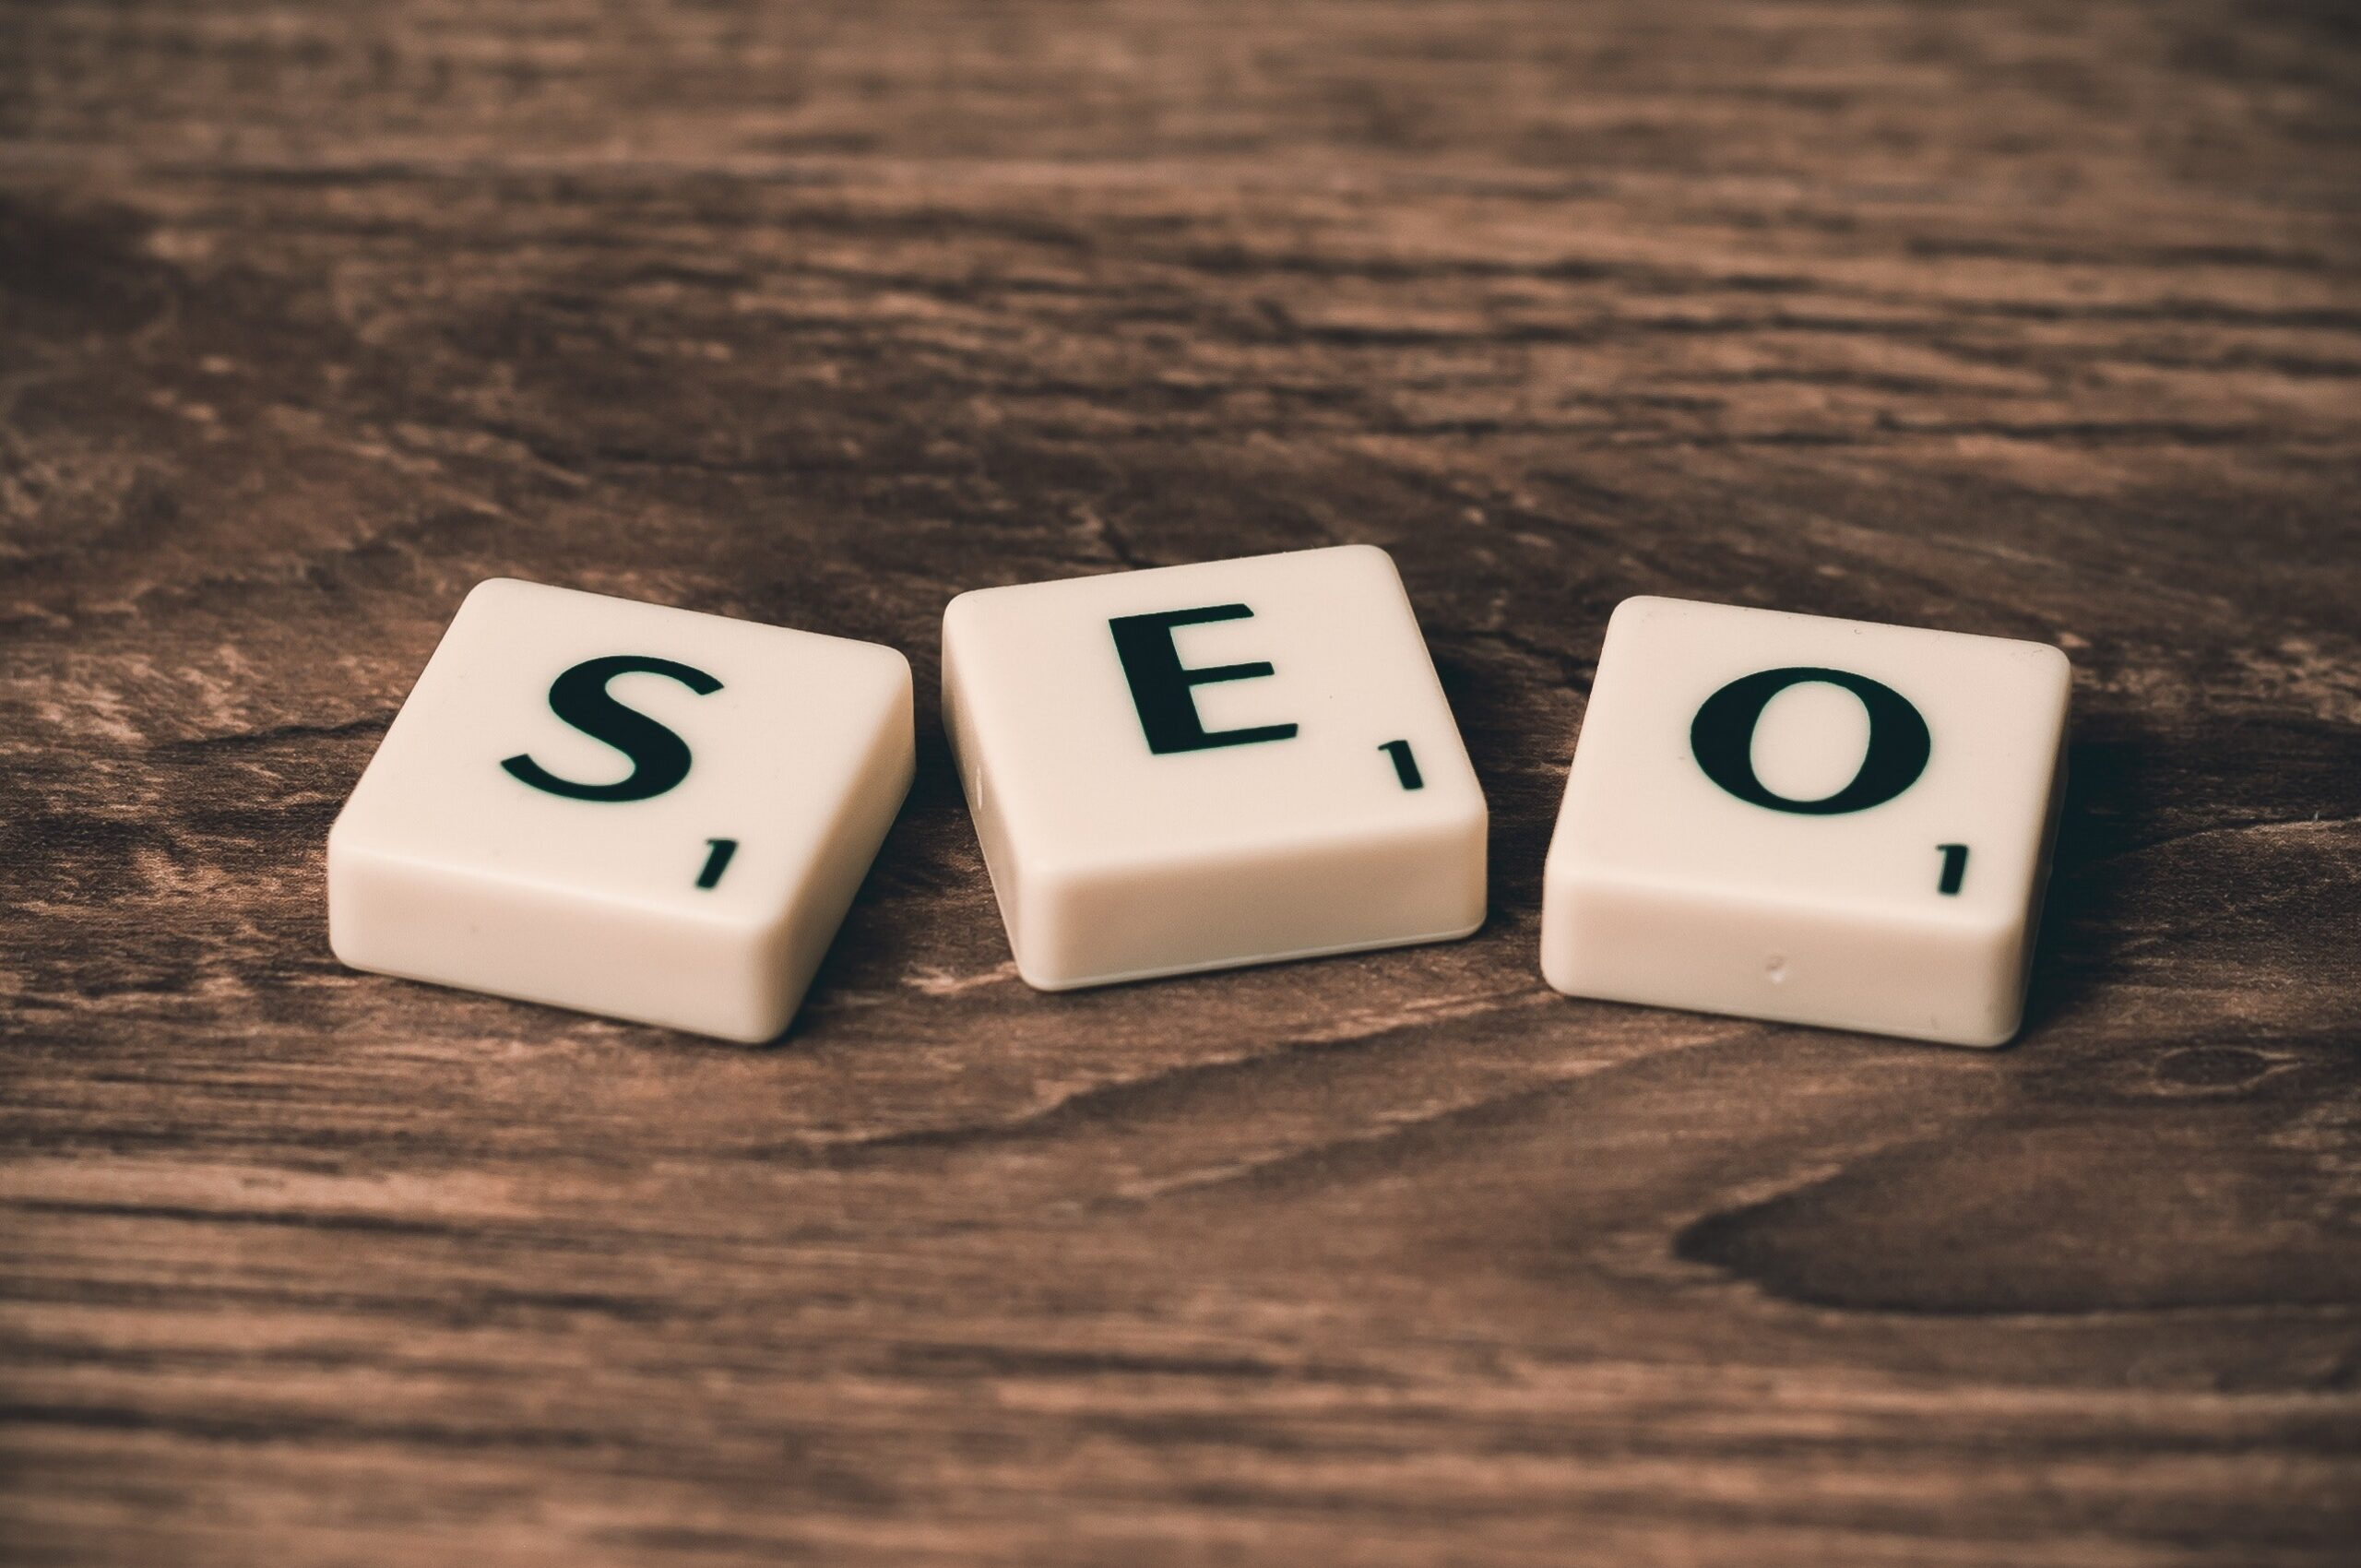 How Much Should the Pandemic Affect Your SEO Efforts? 5 Things to Focus On Now